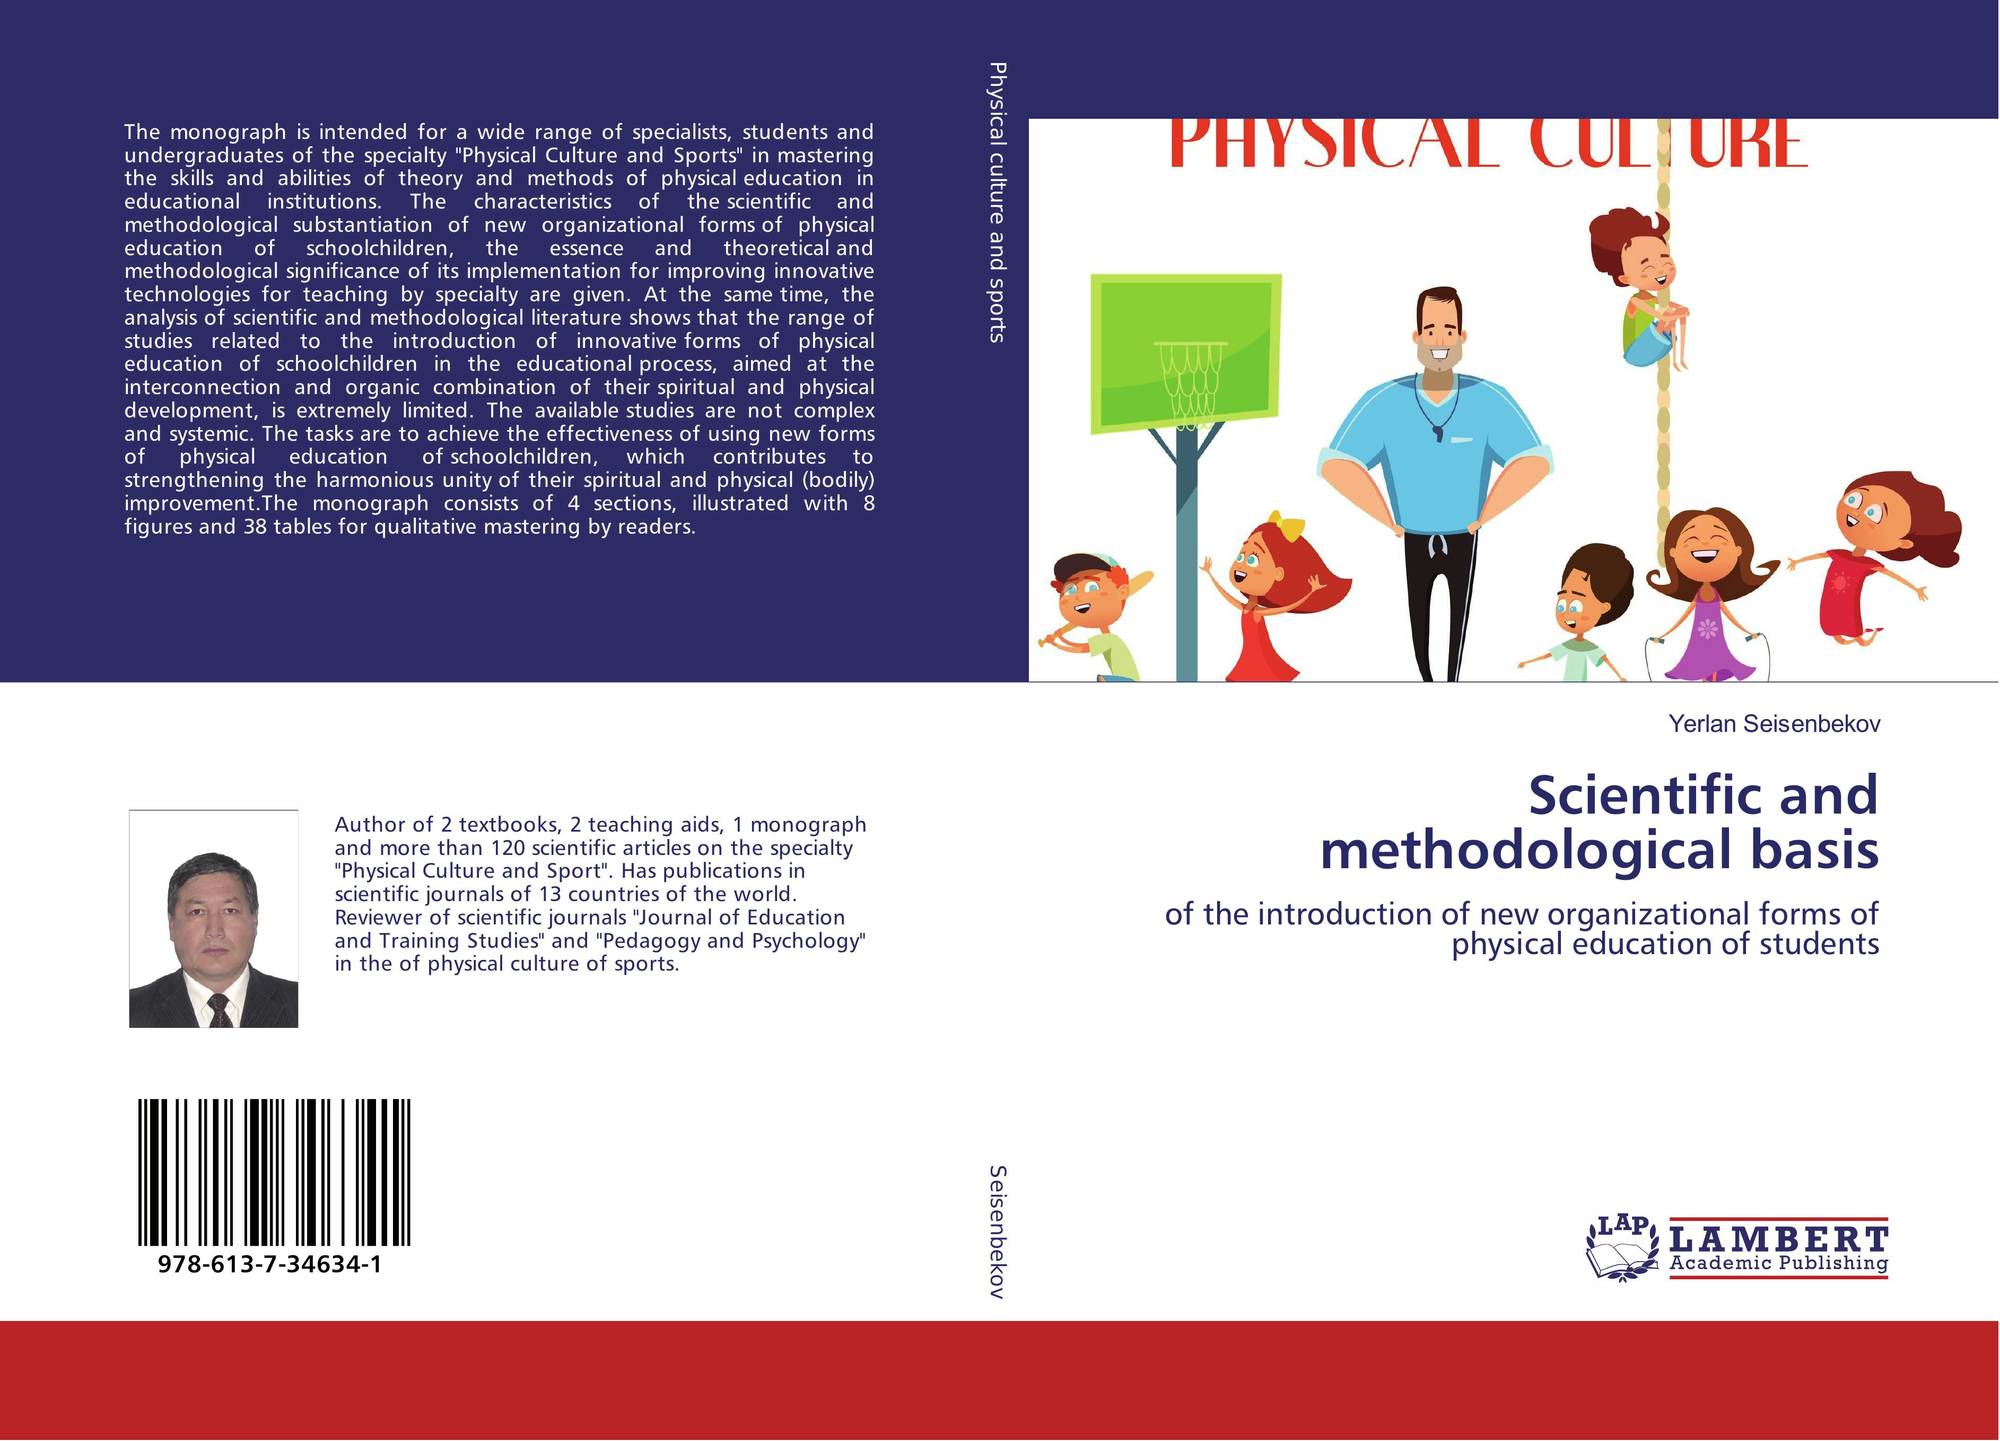 methodological and theoretical issues and advancements The methodological problems with this research include (a) the failure of investigators to evaluate the experiential impact of expectancy-inducing instructions, (b) the use of unconvincing placebo manipu.